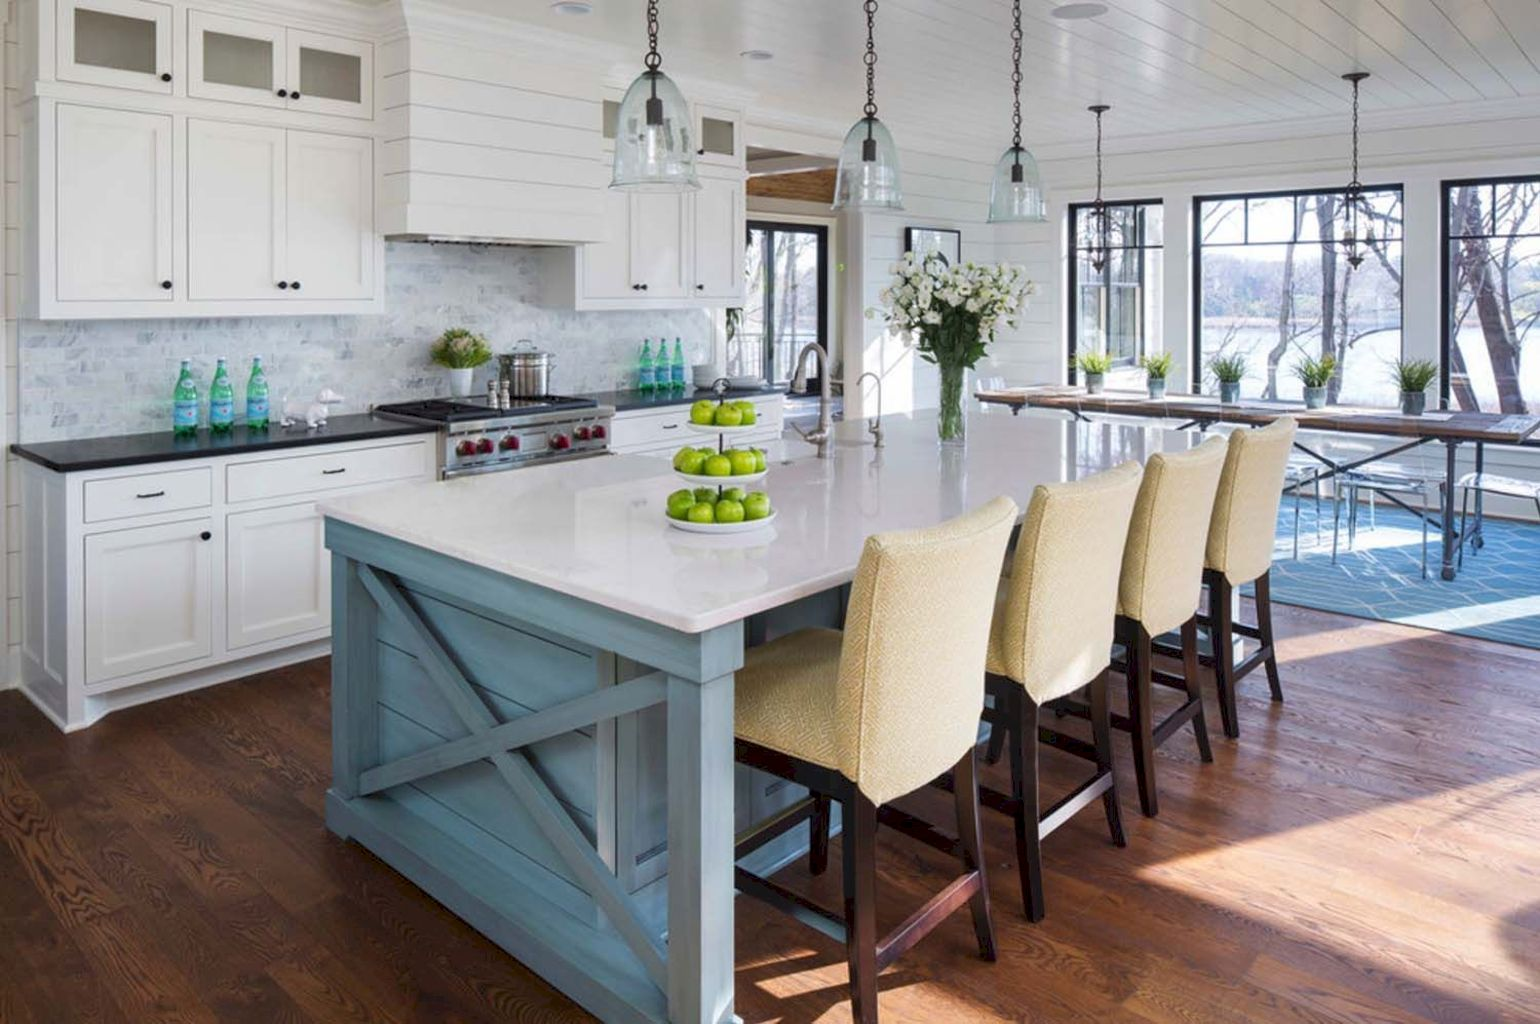 Best kitchen island table combo with an ergonomic design very efficient to improve kitchen functionality Image 3